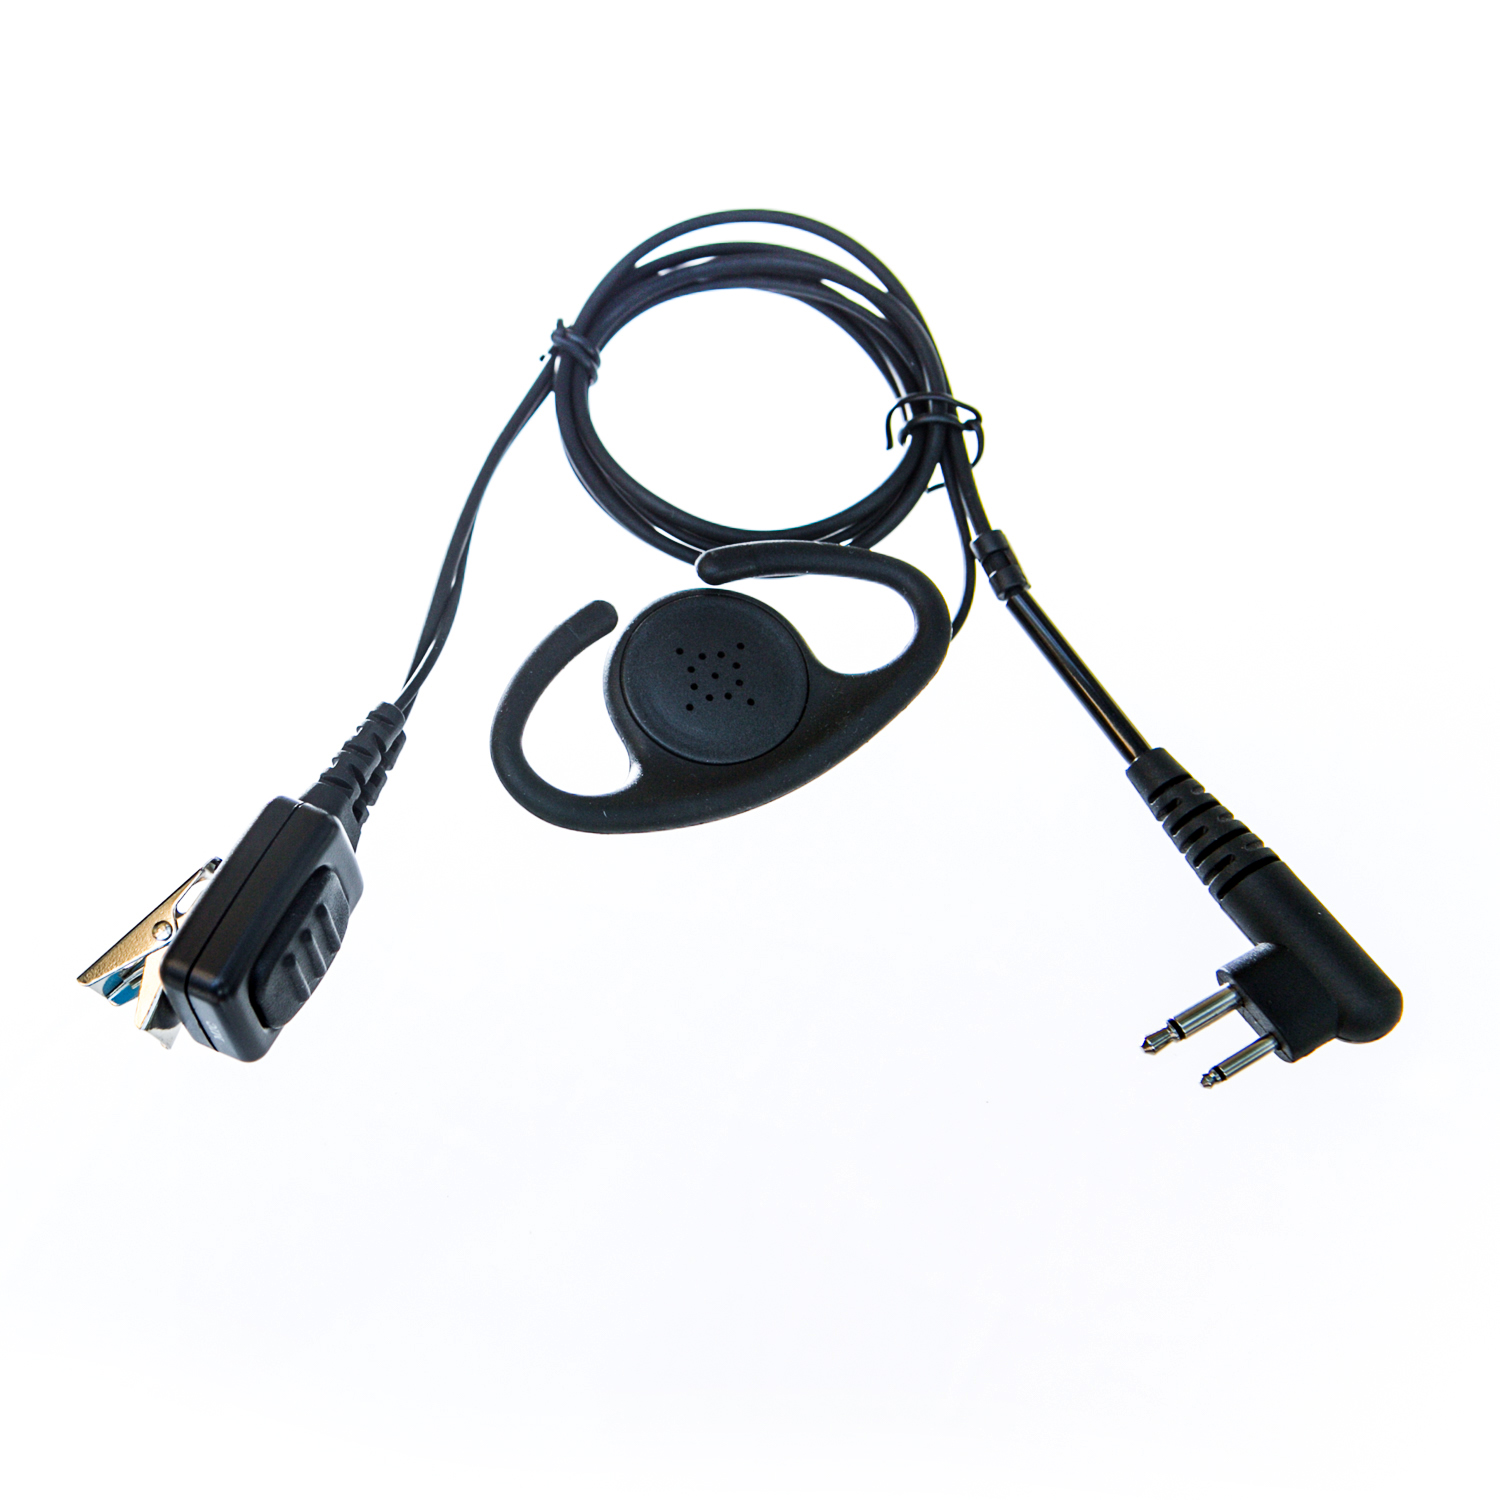 Adjustable D shape earpiece with mic for Hytera radio (2 pin)